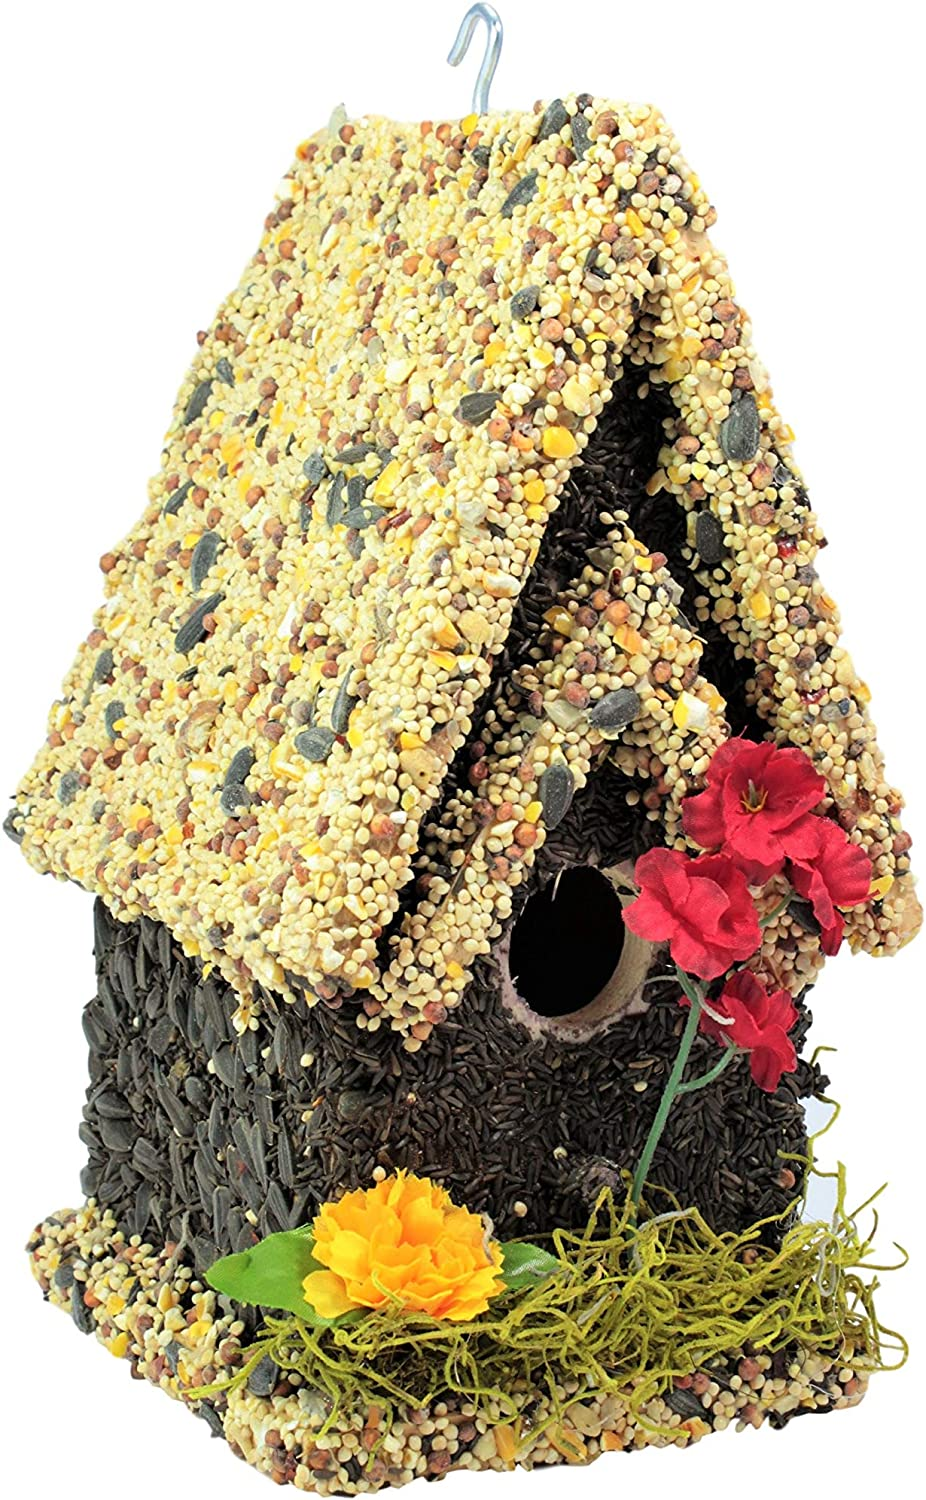 Edible Birdhouses  Reseedable Wooden Birdhouse Covered w/Birdseed   Squirrel Proof Bird Feeder  Made in The USA (TL)